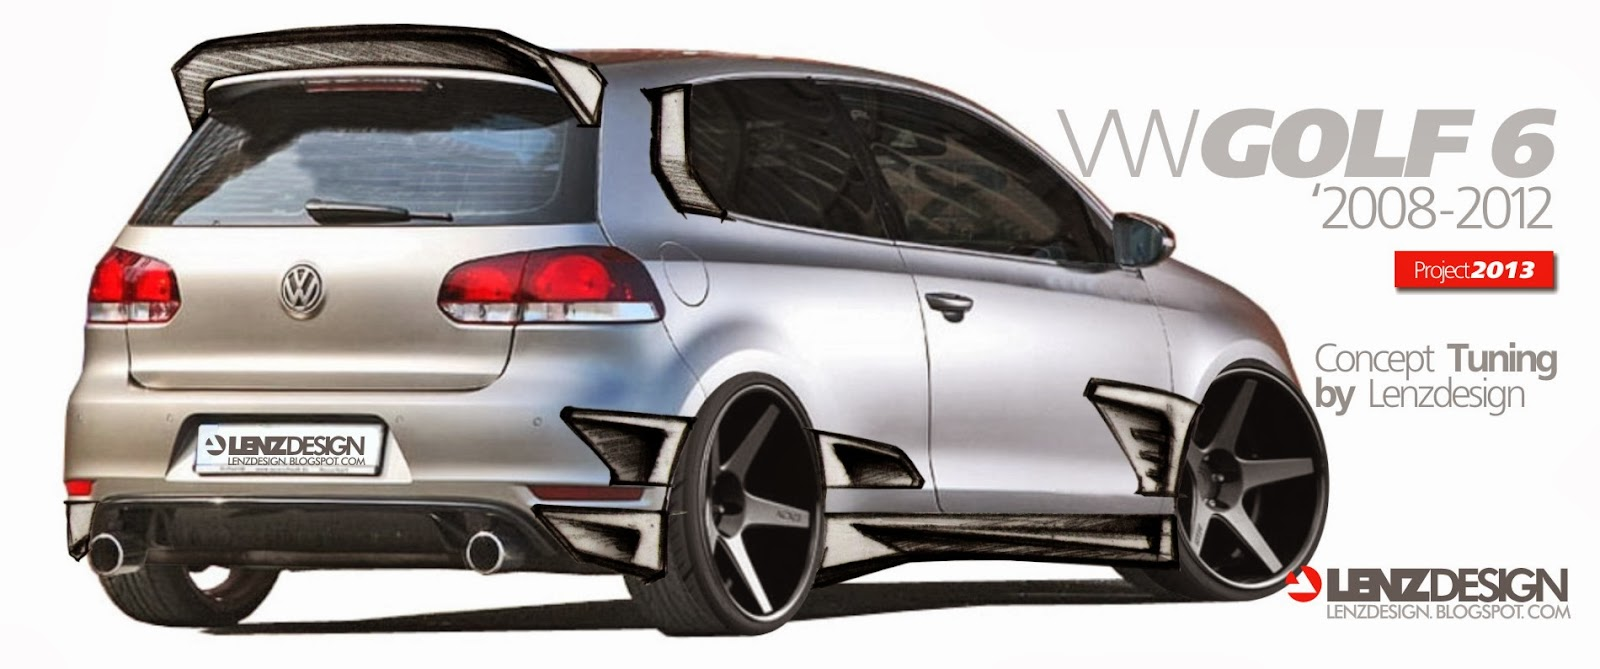 vw golf 6 tuning israel lenzdesign performance body kit project. Black Bedroom Furniture Sets. Home Design Ideas